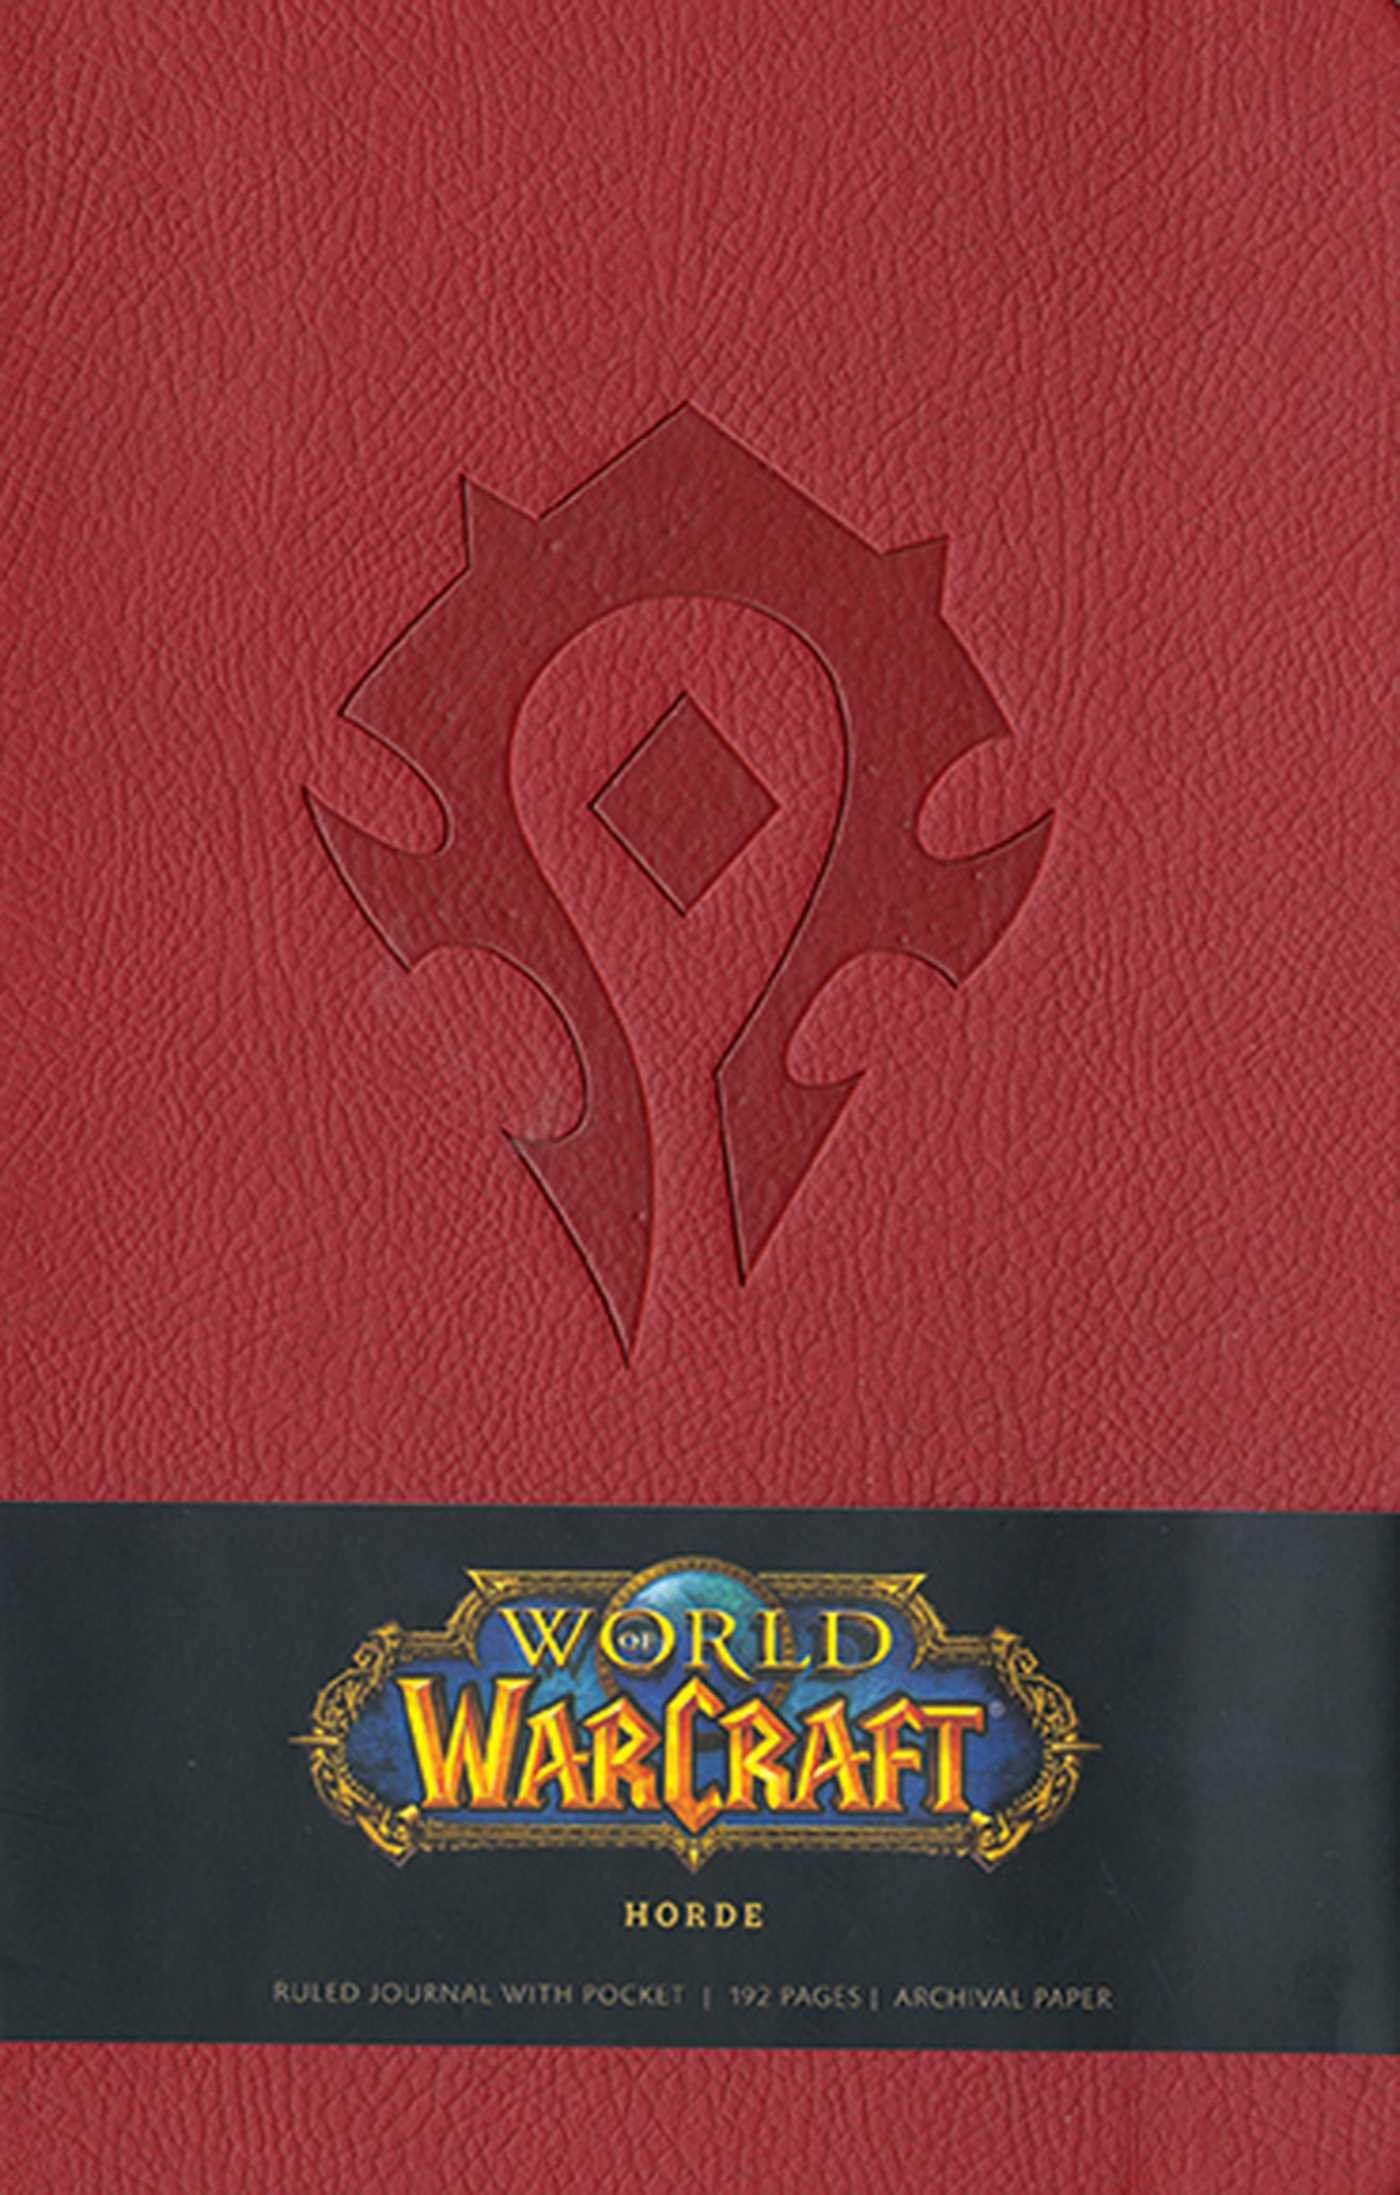 Image OfWORLD OF WARCRAFT HORDE HARDCOVER RULED JOURNAL (LARGE)